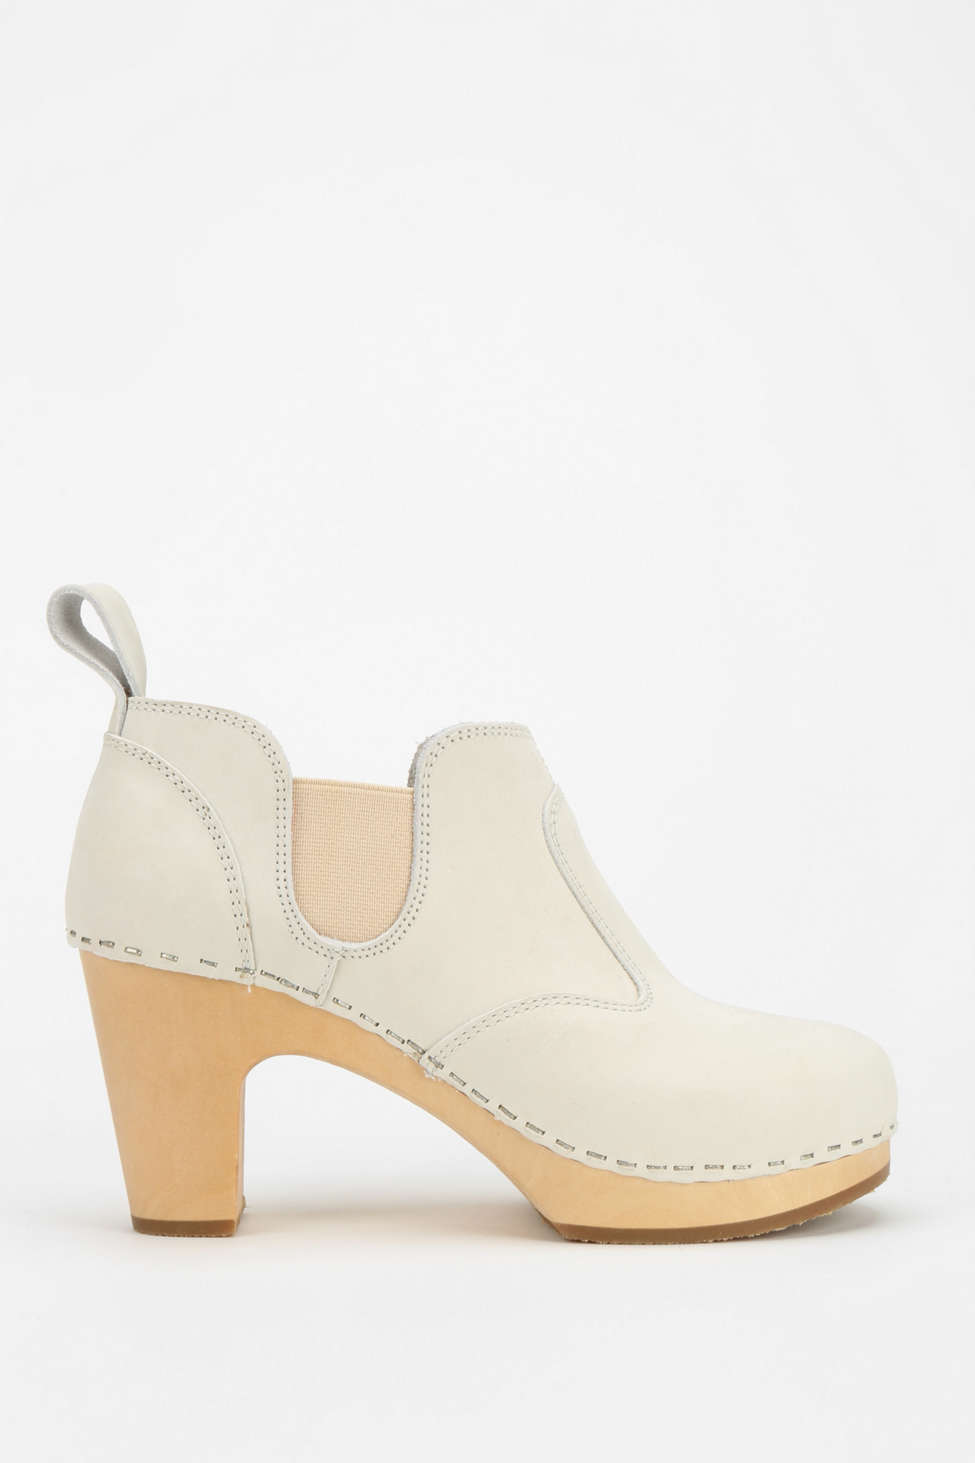 http://www.urbanoutfitters.com/urban/catalog/productdetail.jsp?id=30671812&parentid=SALE_W_SHOES#/